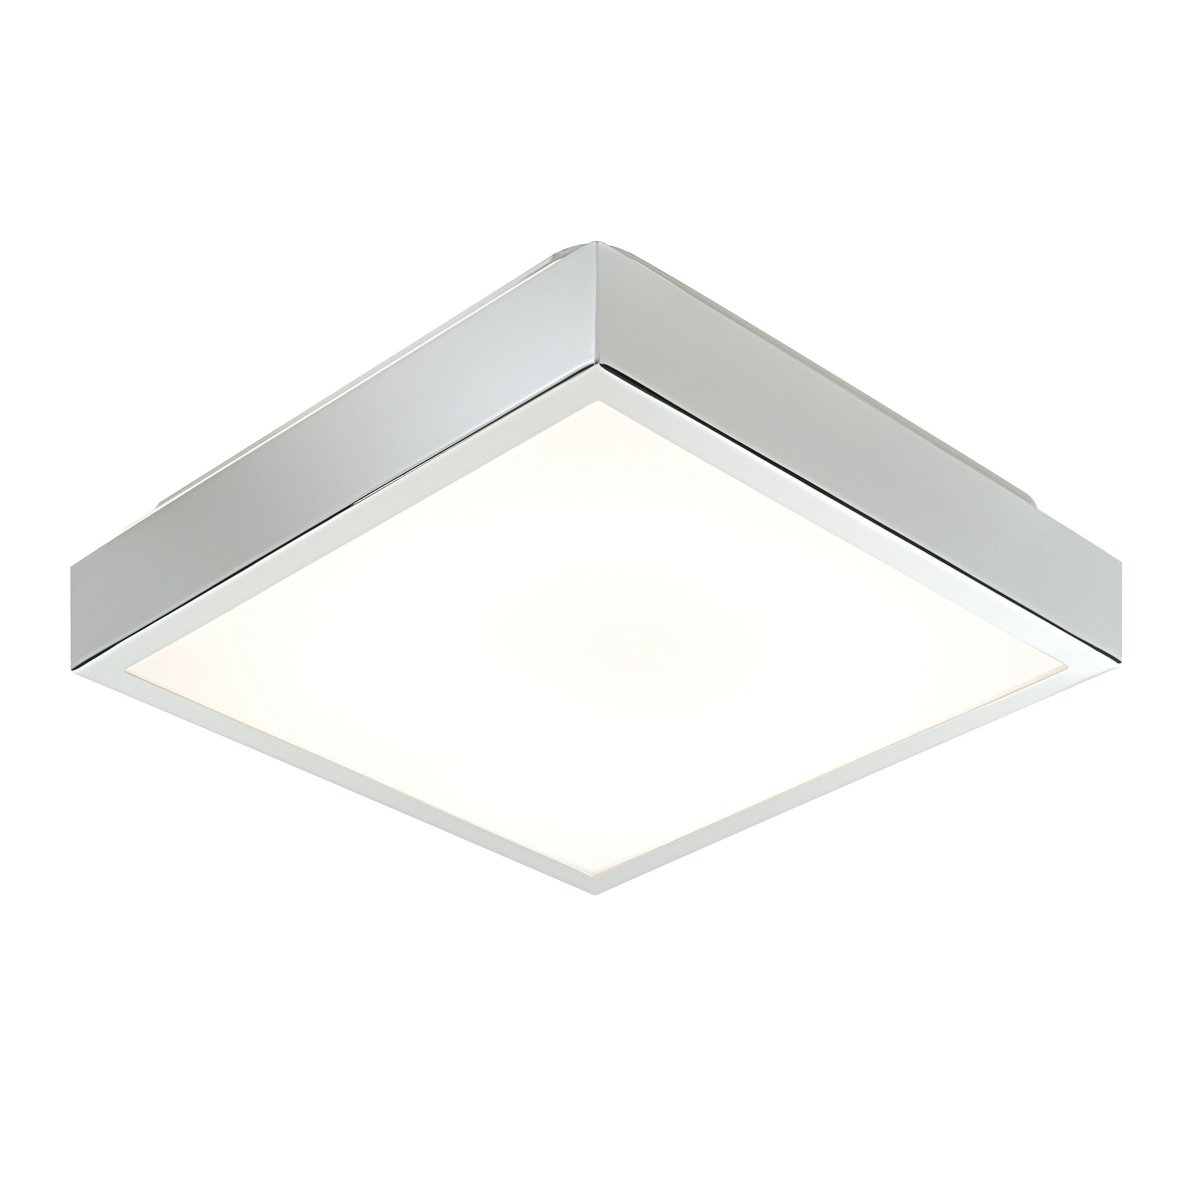 Chrome Plated Square 28W 2D HF Fluorescent Flush Bathroom Ceiling Light IP44 Rated [Energy Class A] National Lighting